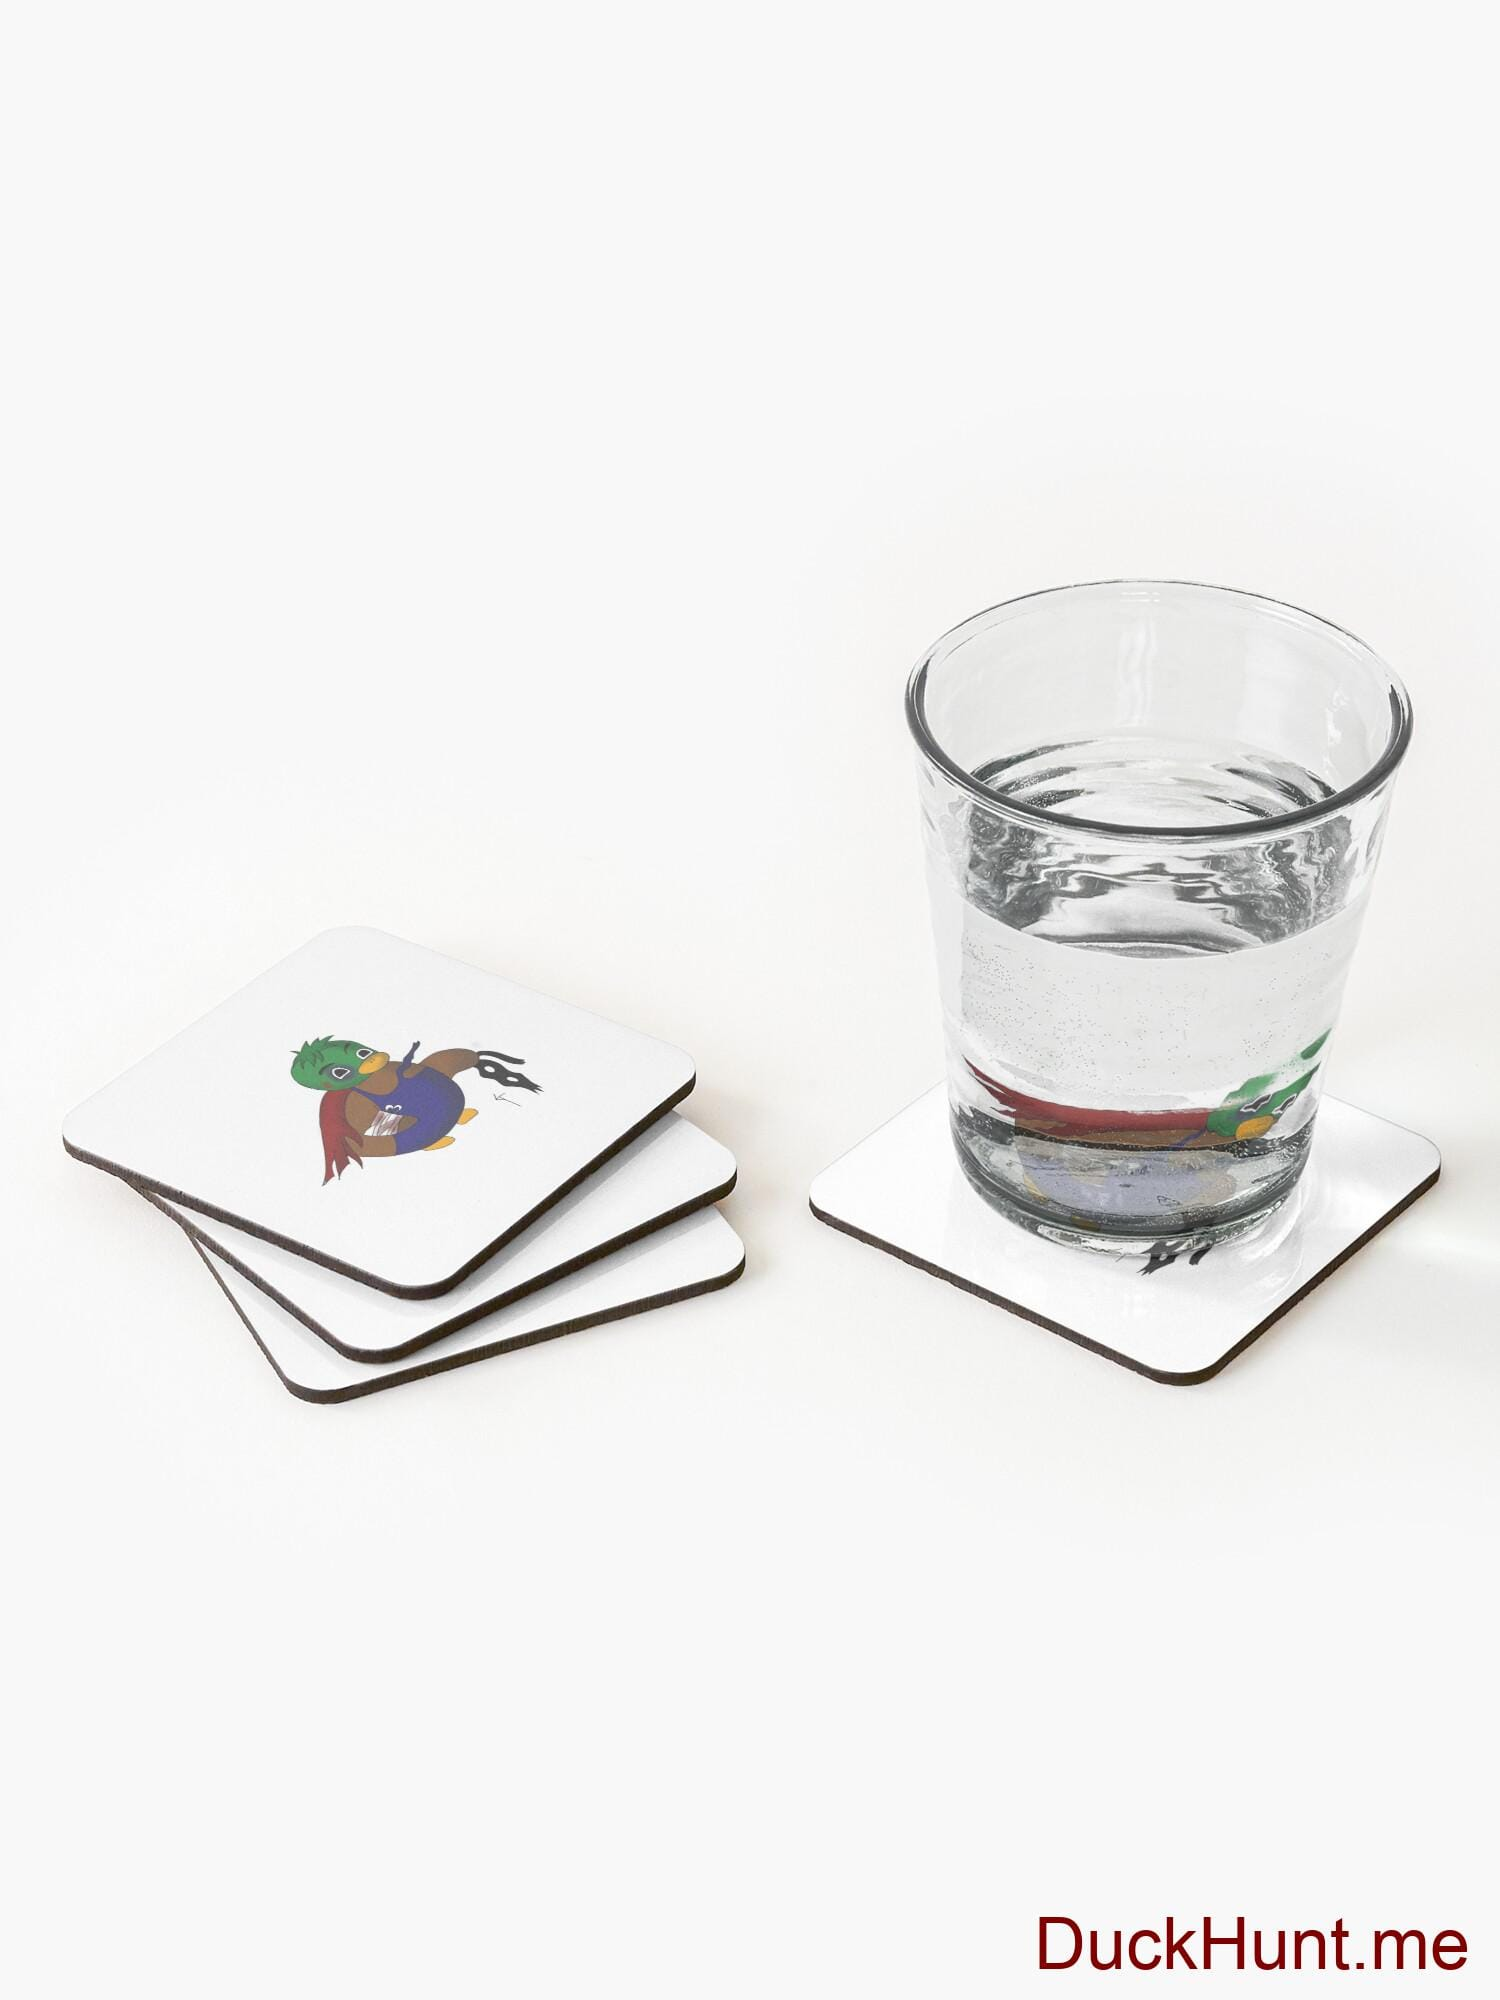 Dead DuckHunt Boss (smokeless) Coasters (Set of 4) alternative image 1